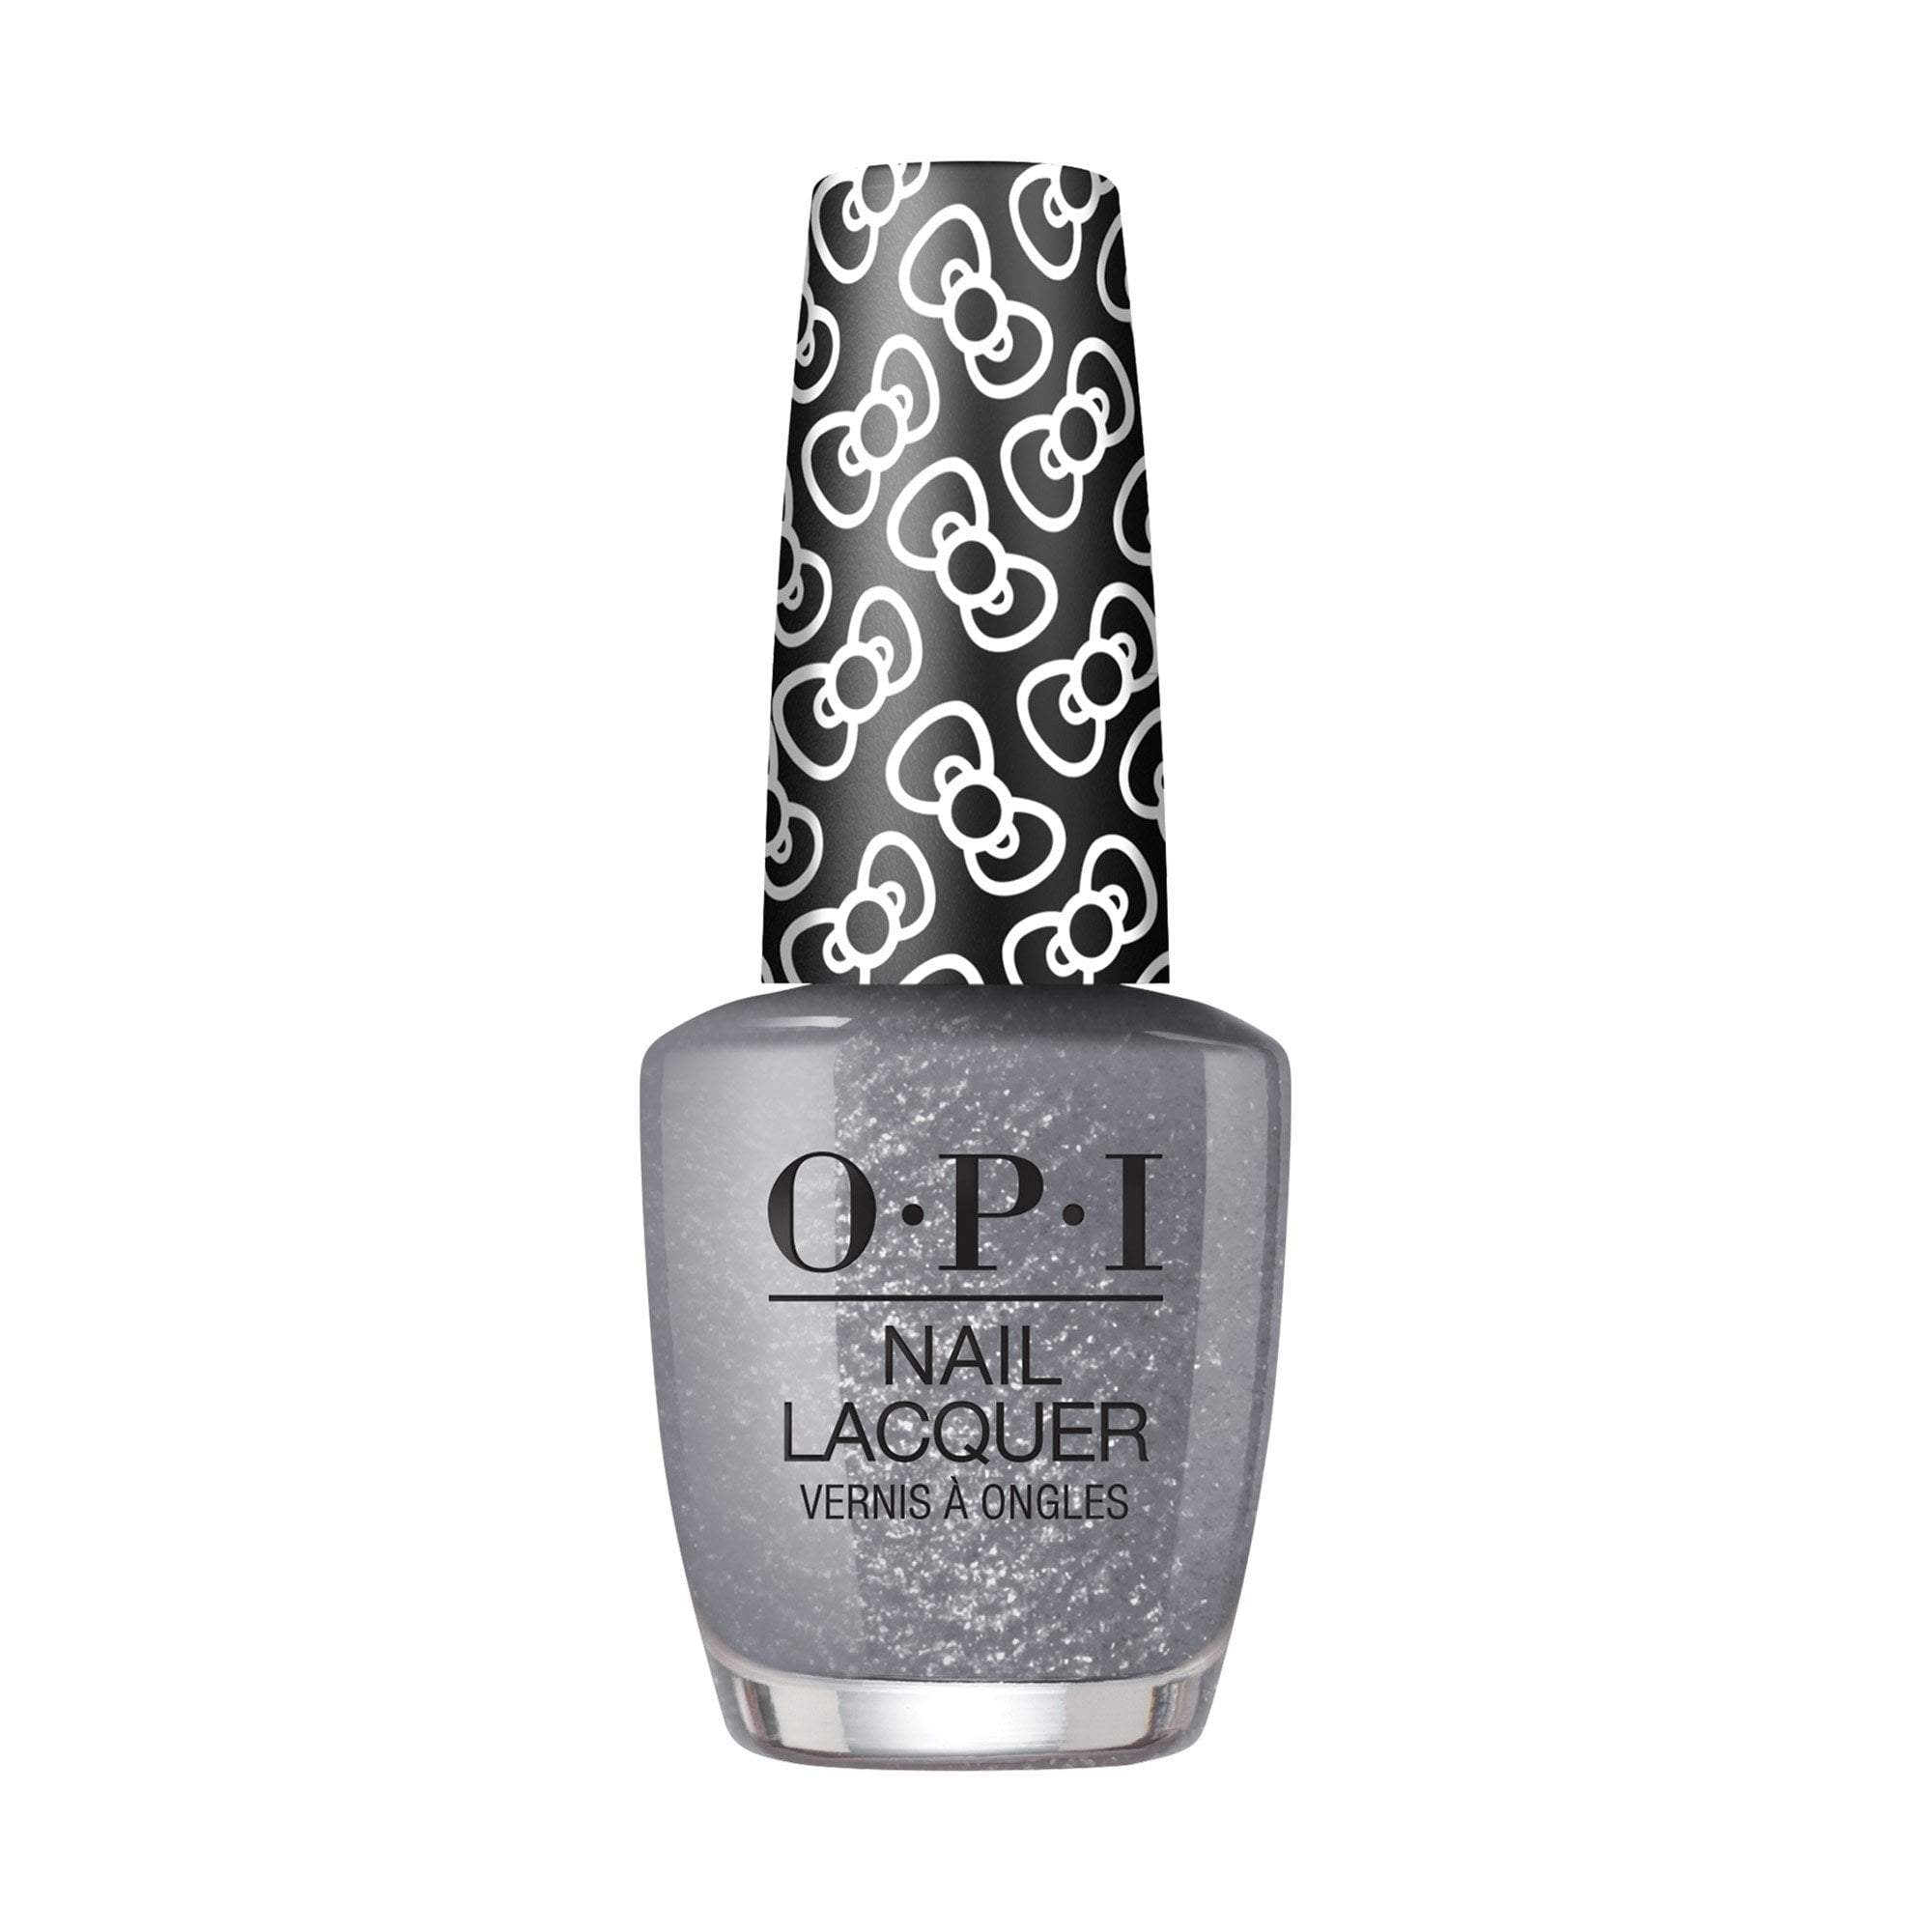 OPI, Hello Kitty Nail Lacquer Isn't She Iconic, 0.5 fl oz